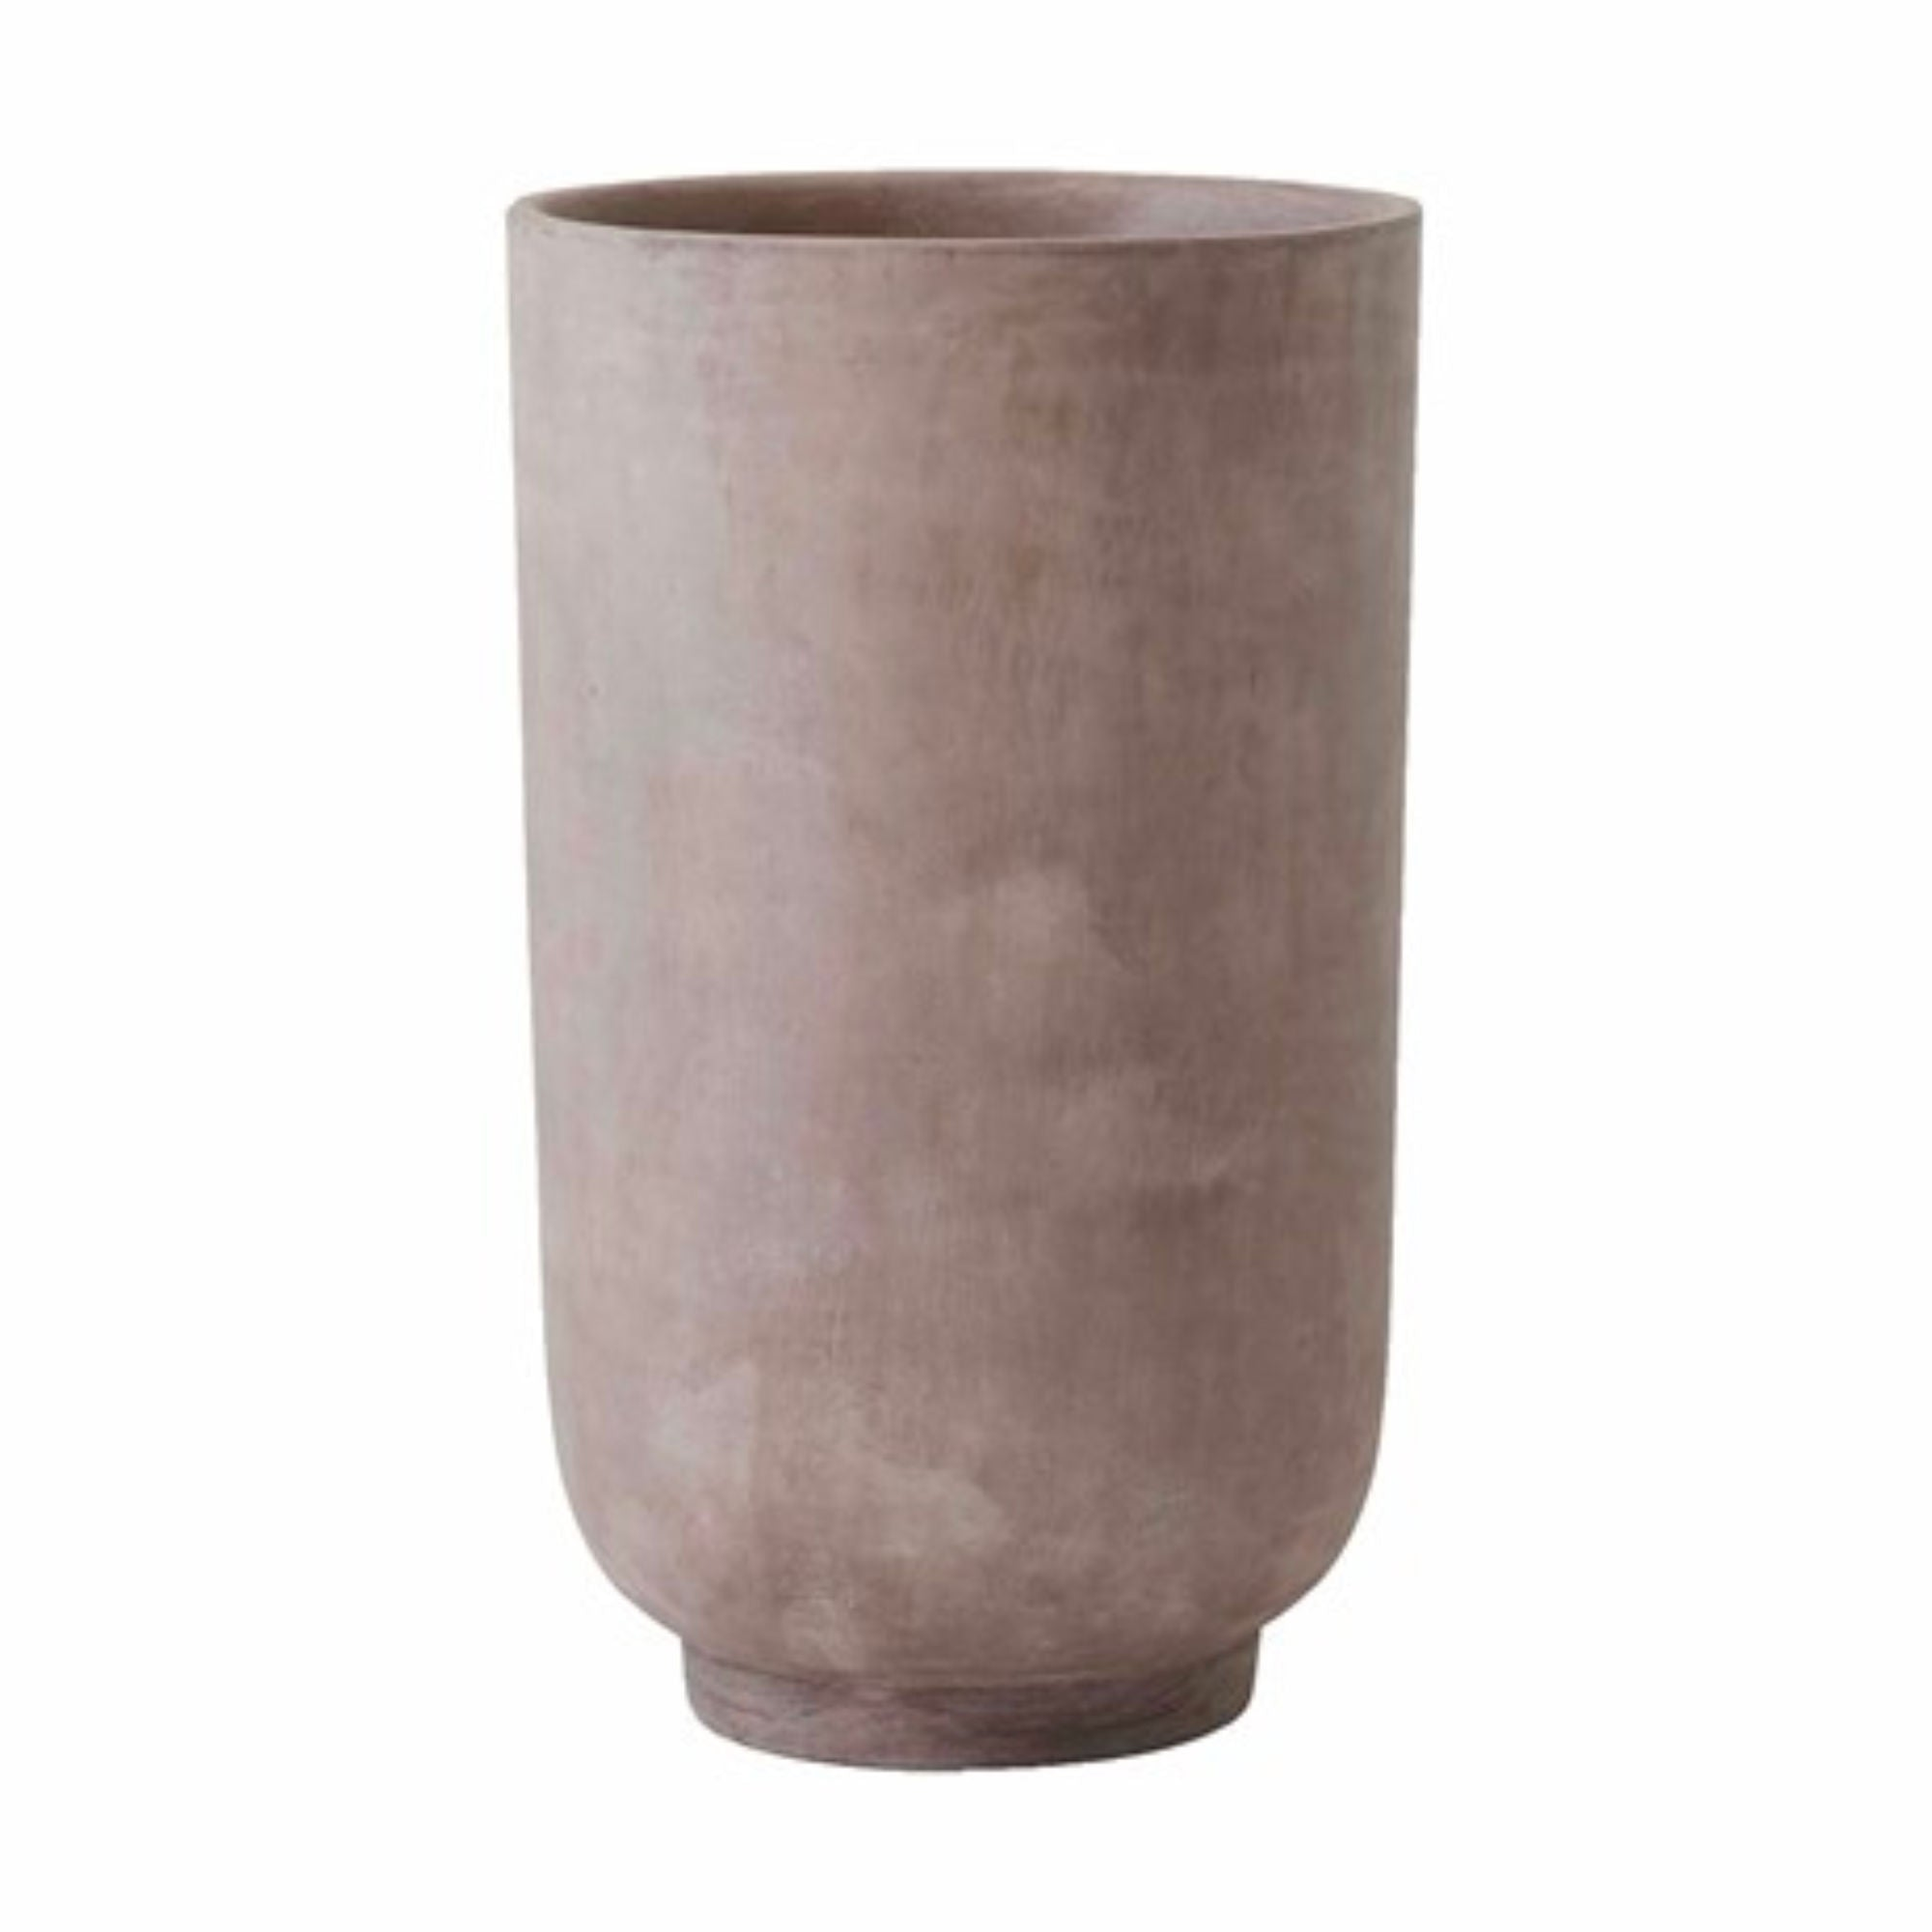 &Tradition SC45 &Tradition Collect ƒ Planter, silver grey